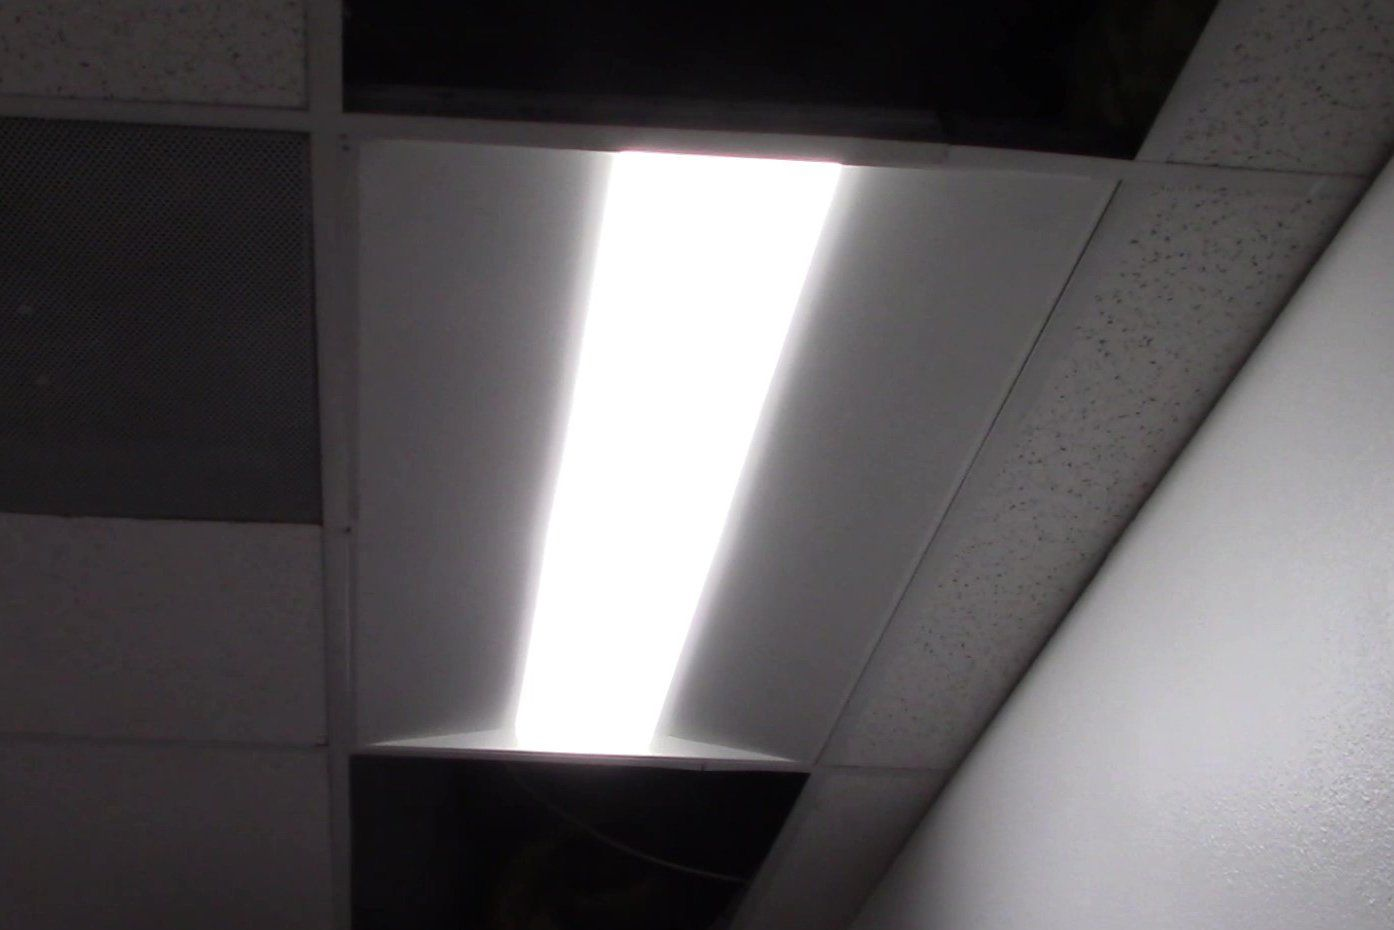 How To Install The Hykolity Architectural Led Troffer Light Led Lights Stylish Office Space Led Ceiling Lights